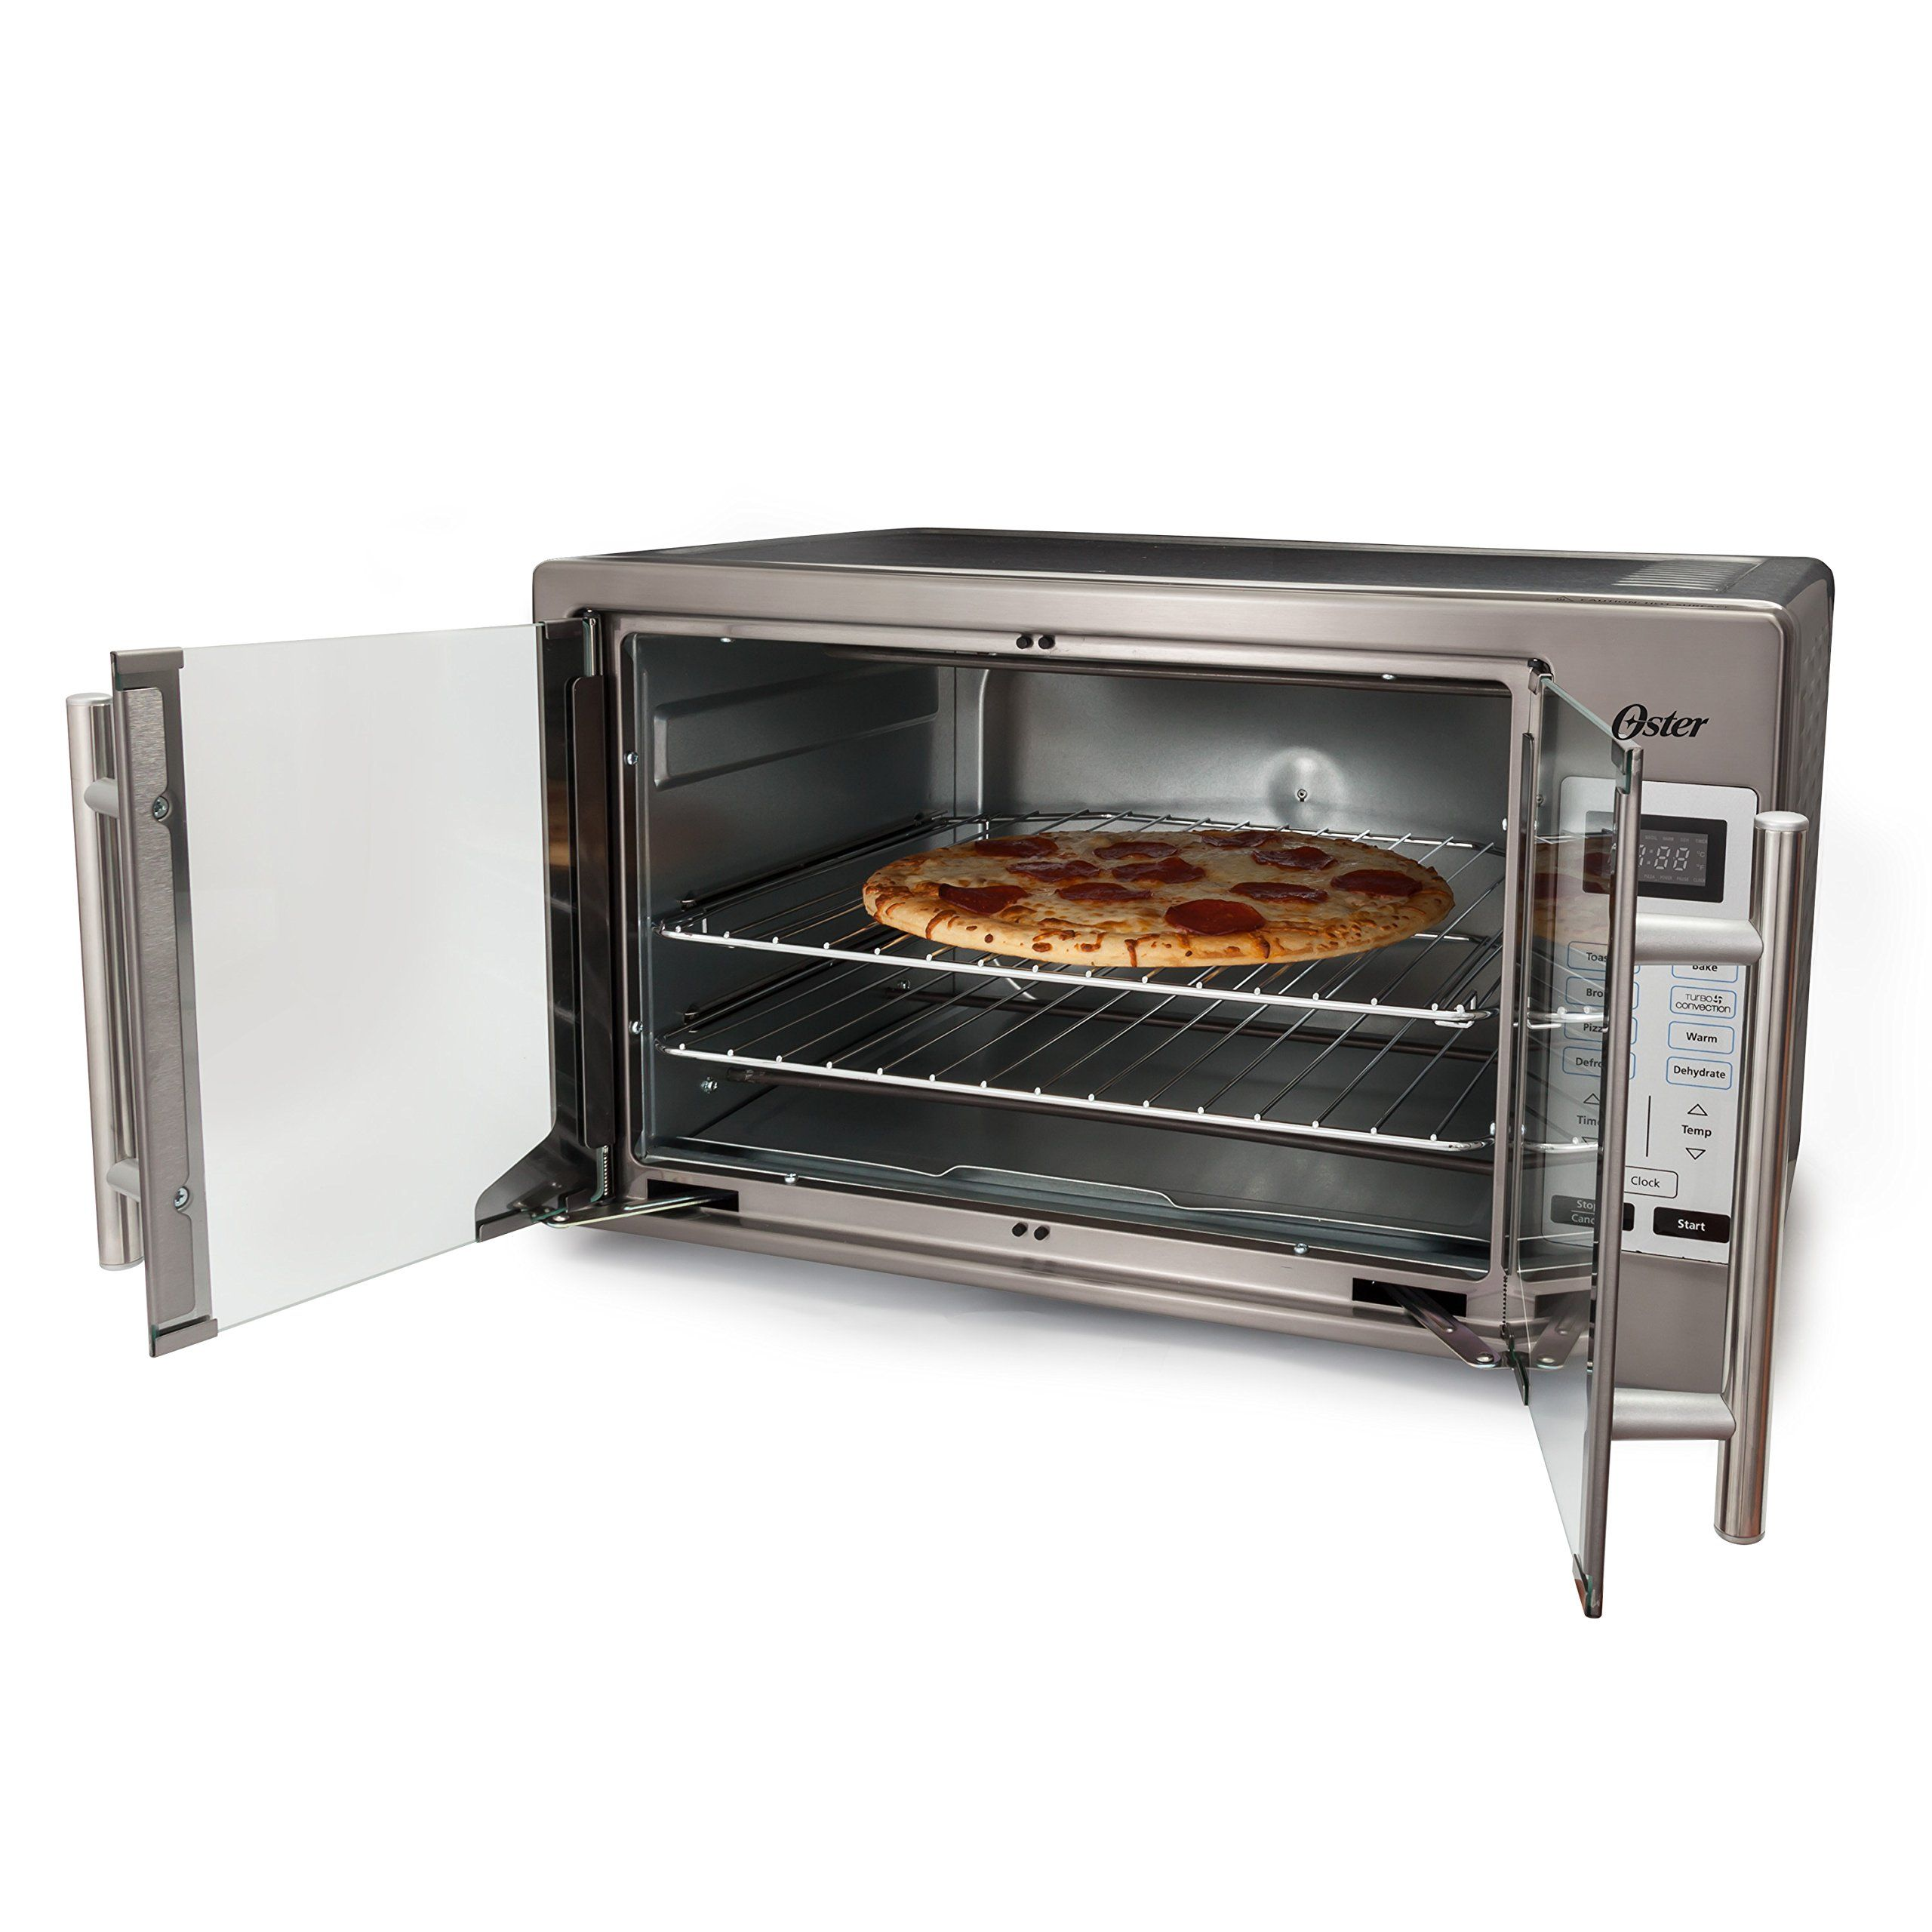 Oster Tssttvfddgds Collection French Door Oven Extra Large Black